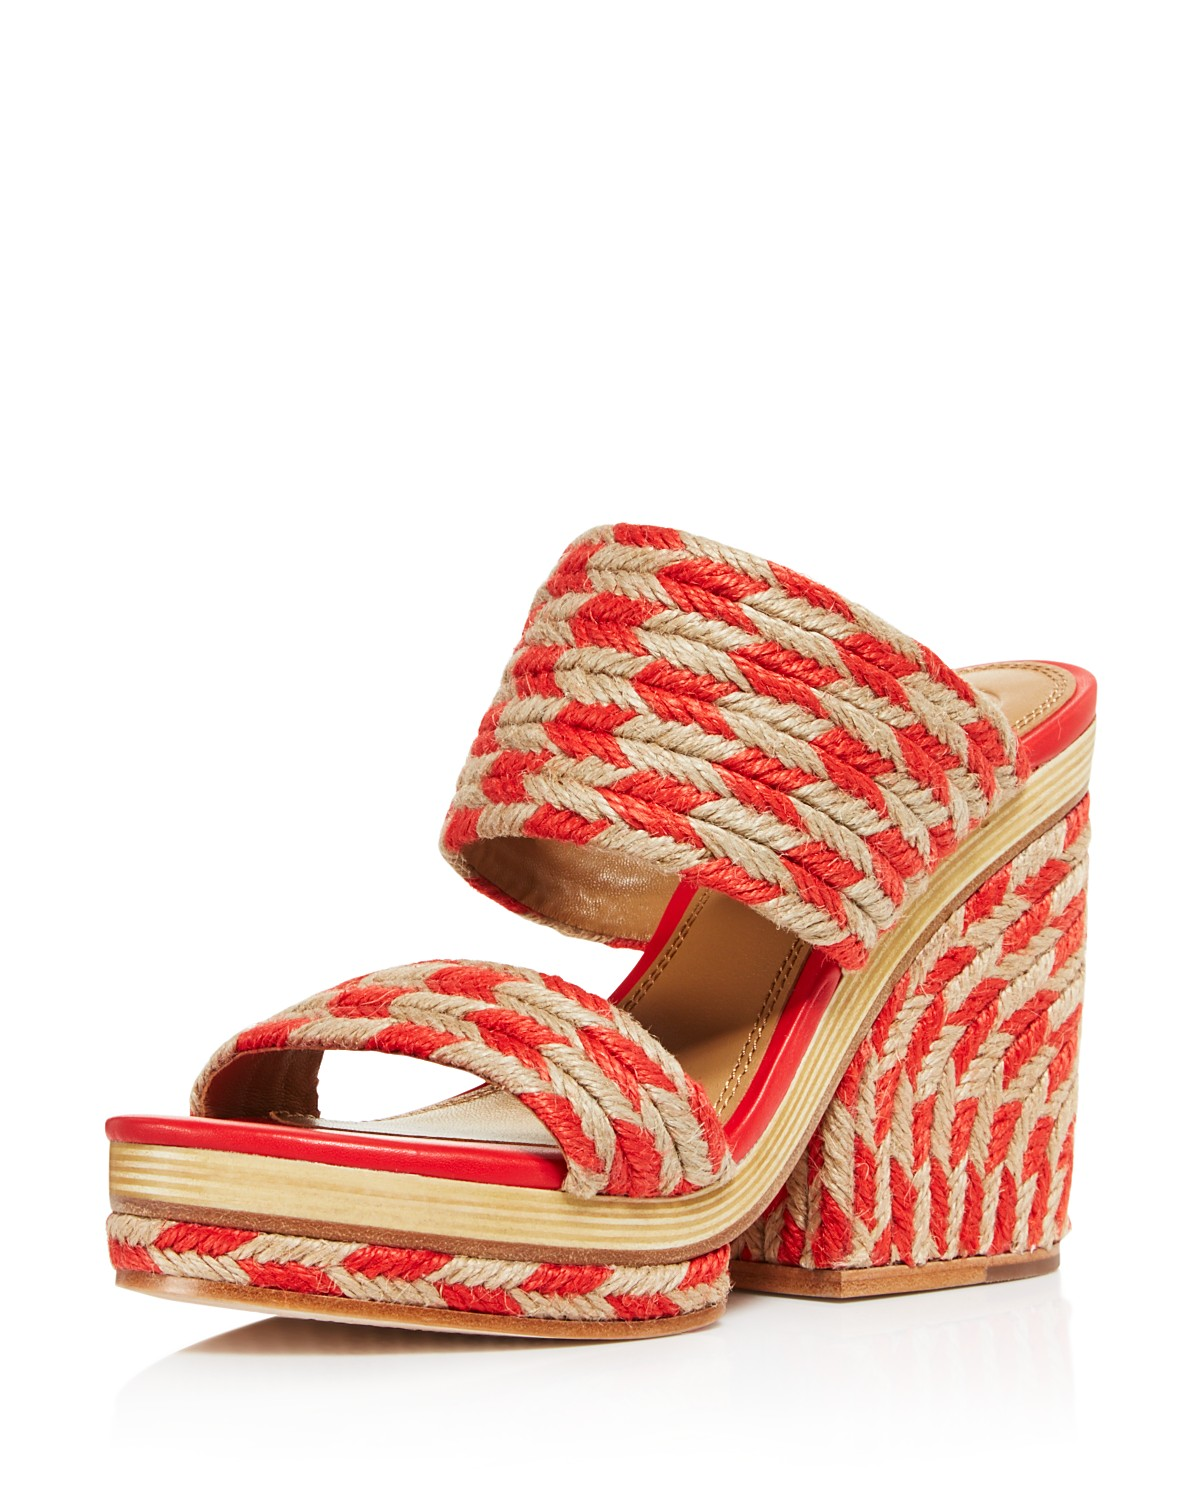 Tory Burch Women's Lola Woven Jute & Leather High-Heel Slide Sandals BROb5dhATp